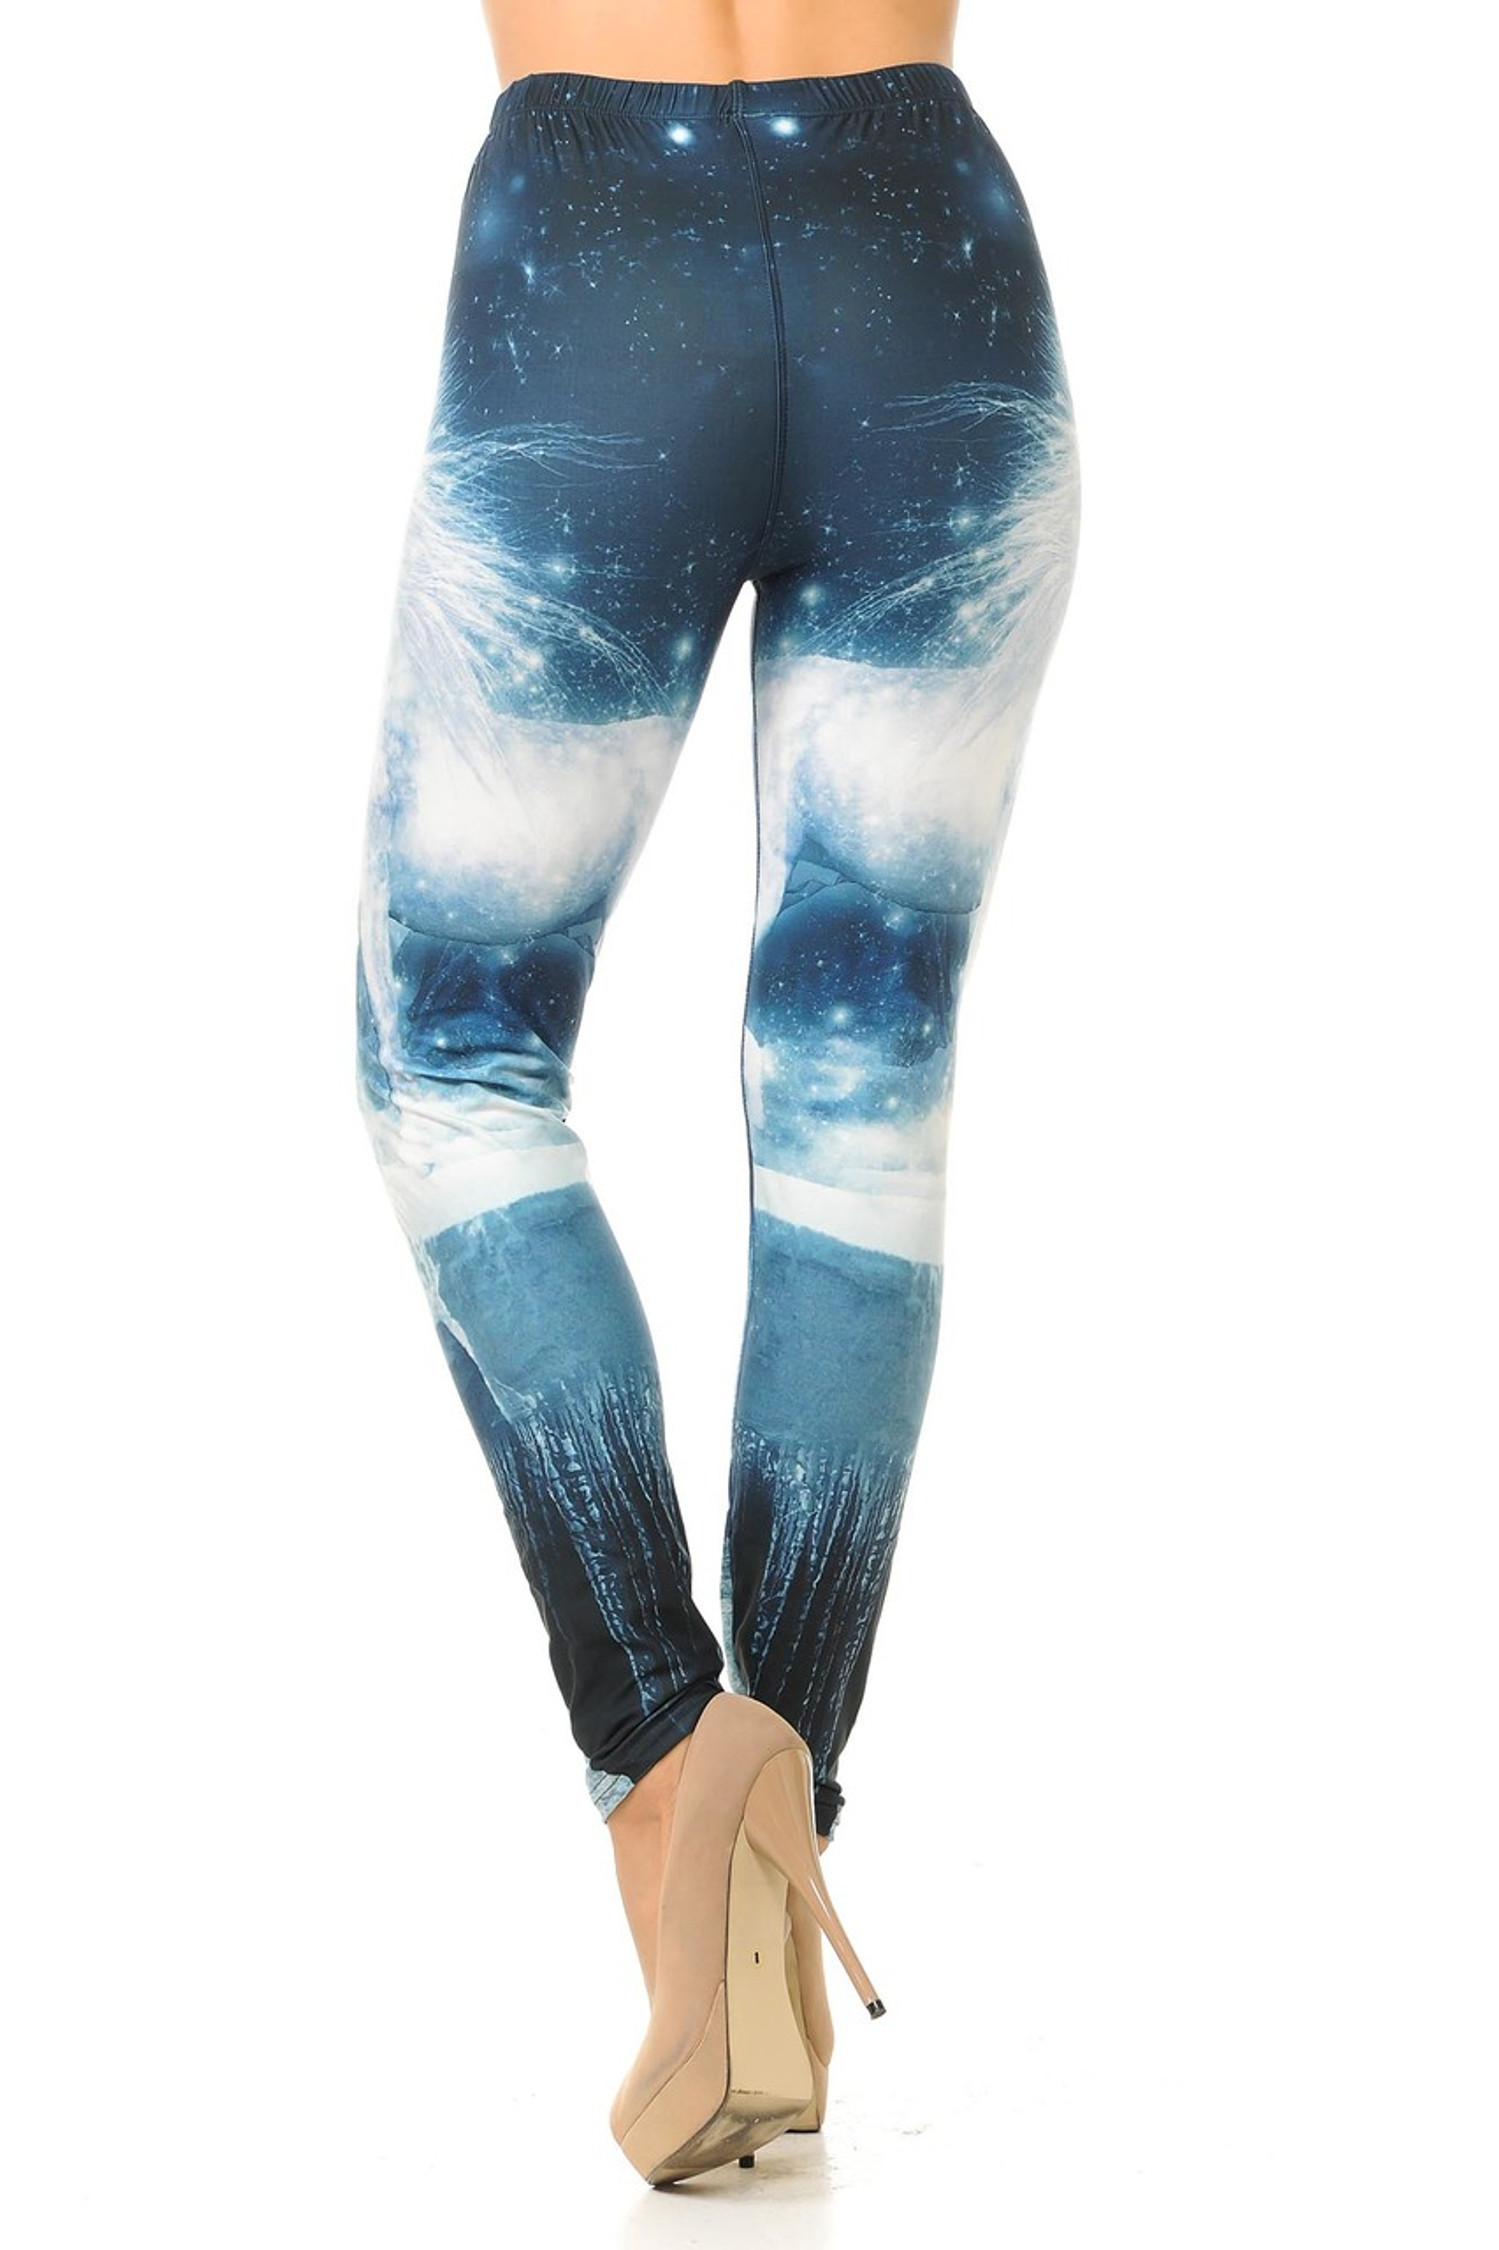 Creamy Soft Epic Unicorn Plus Size Leggings